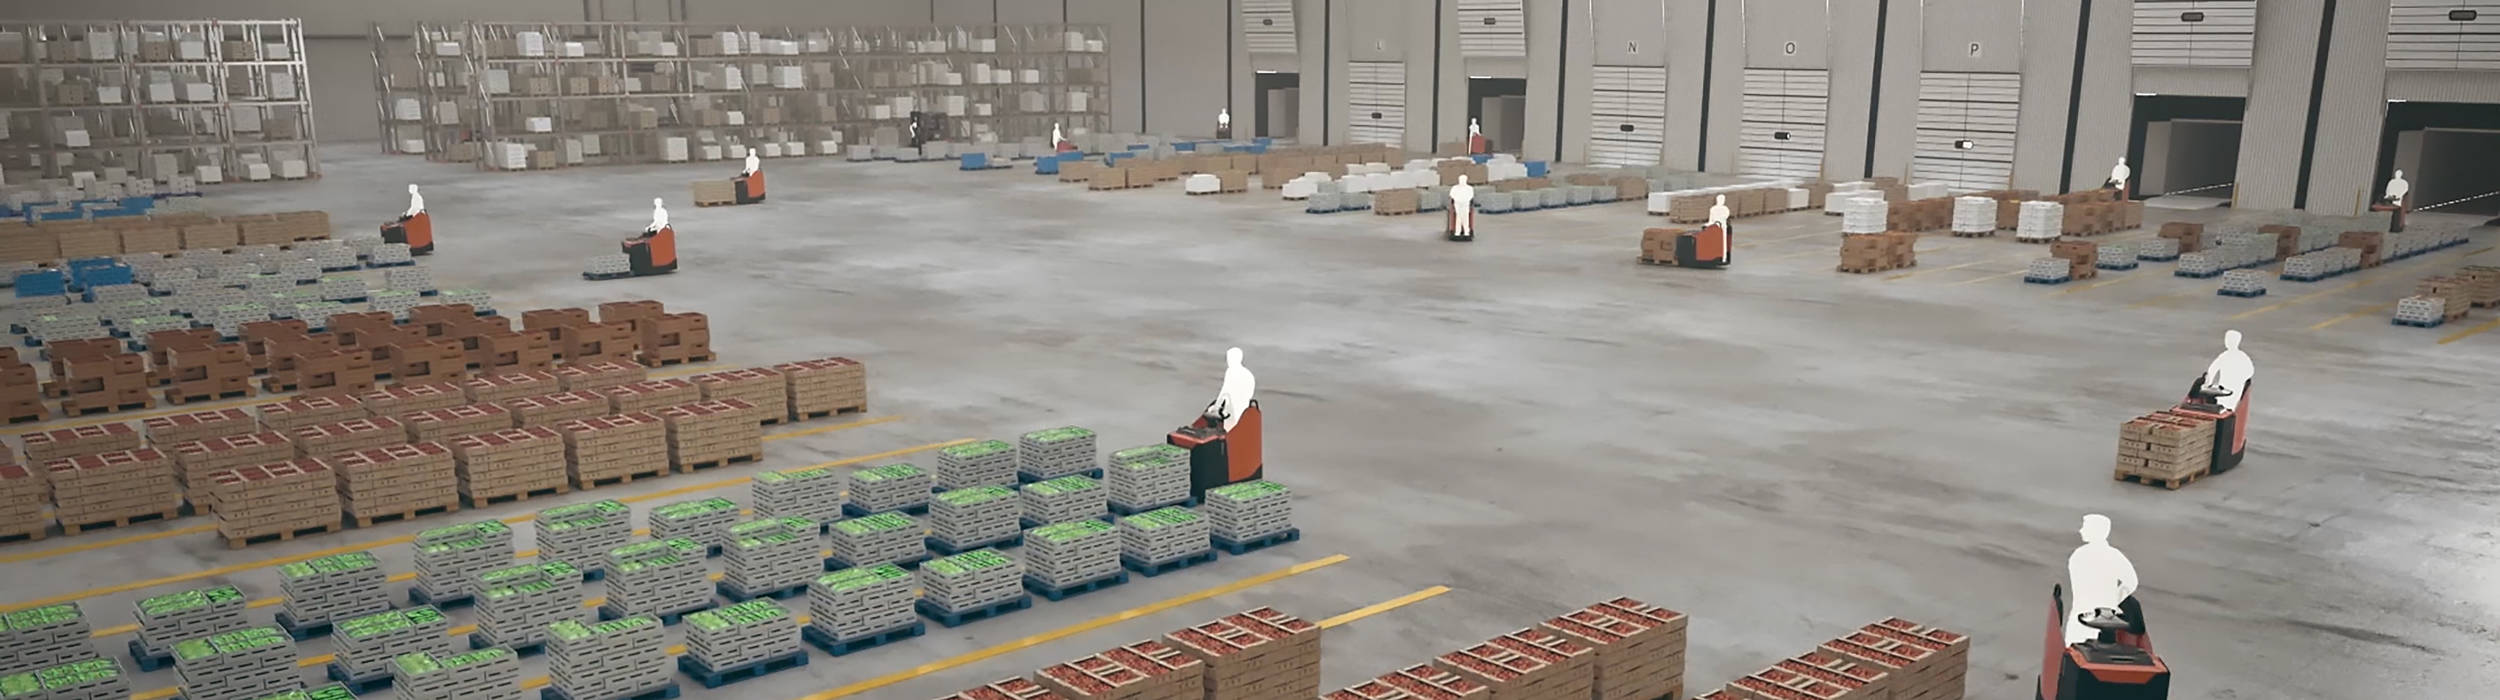 Overview of temperature controlled warehouse with truck operators working